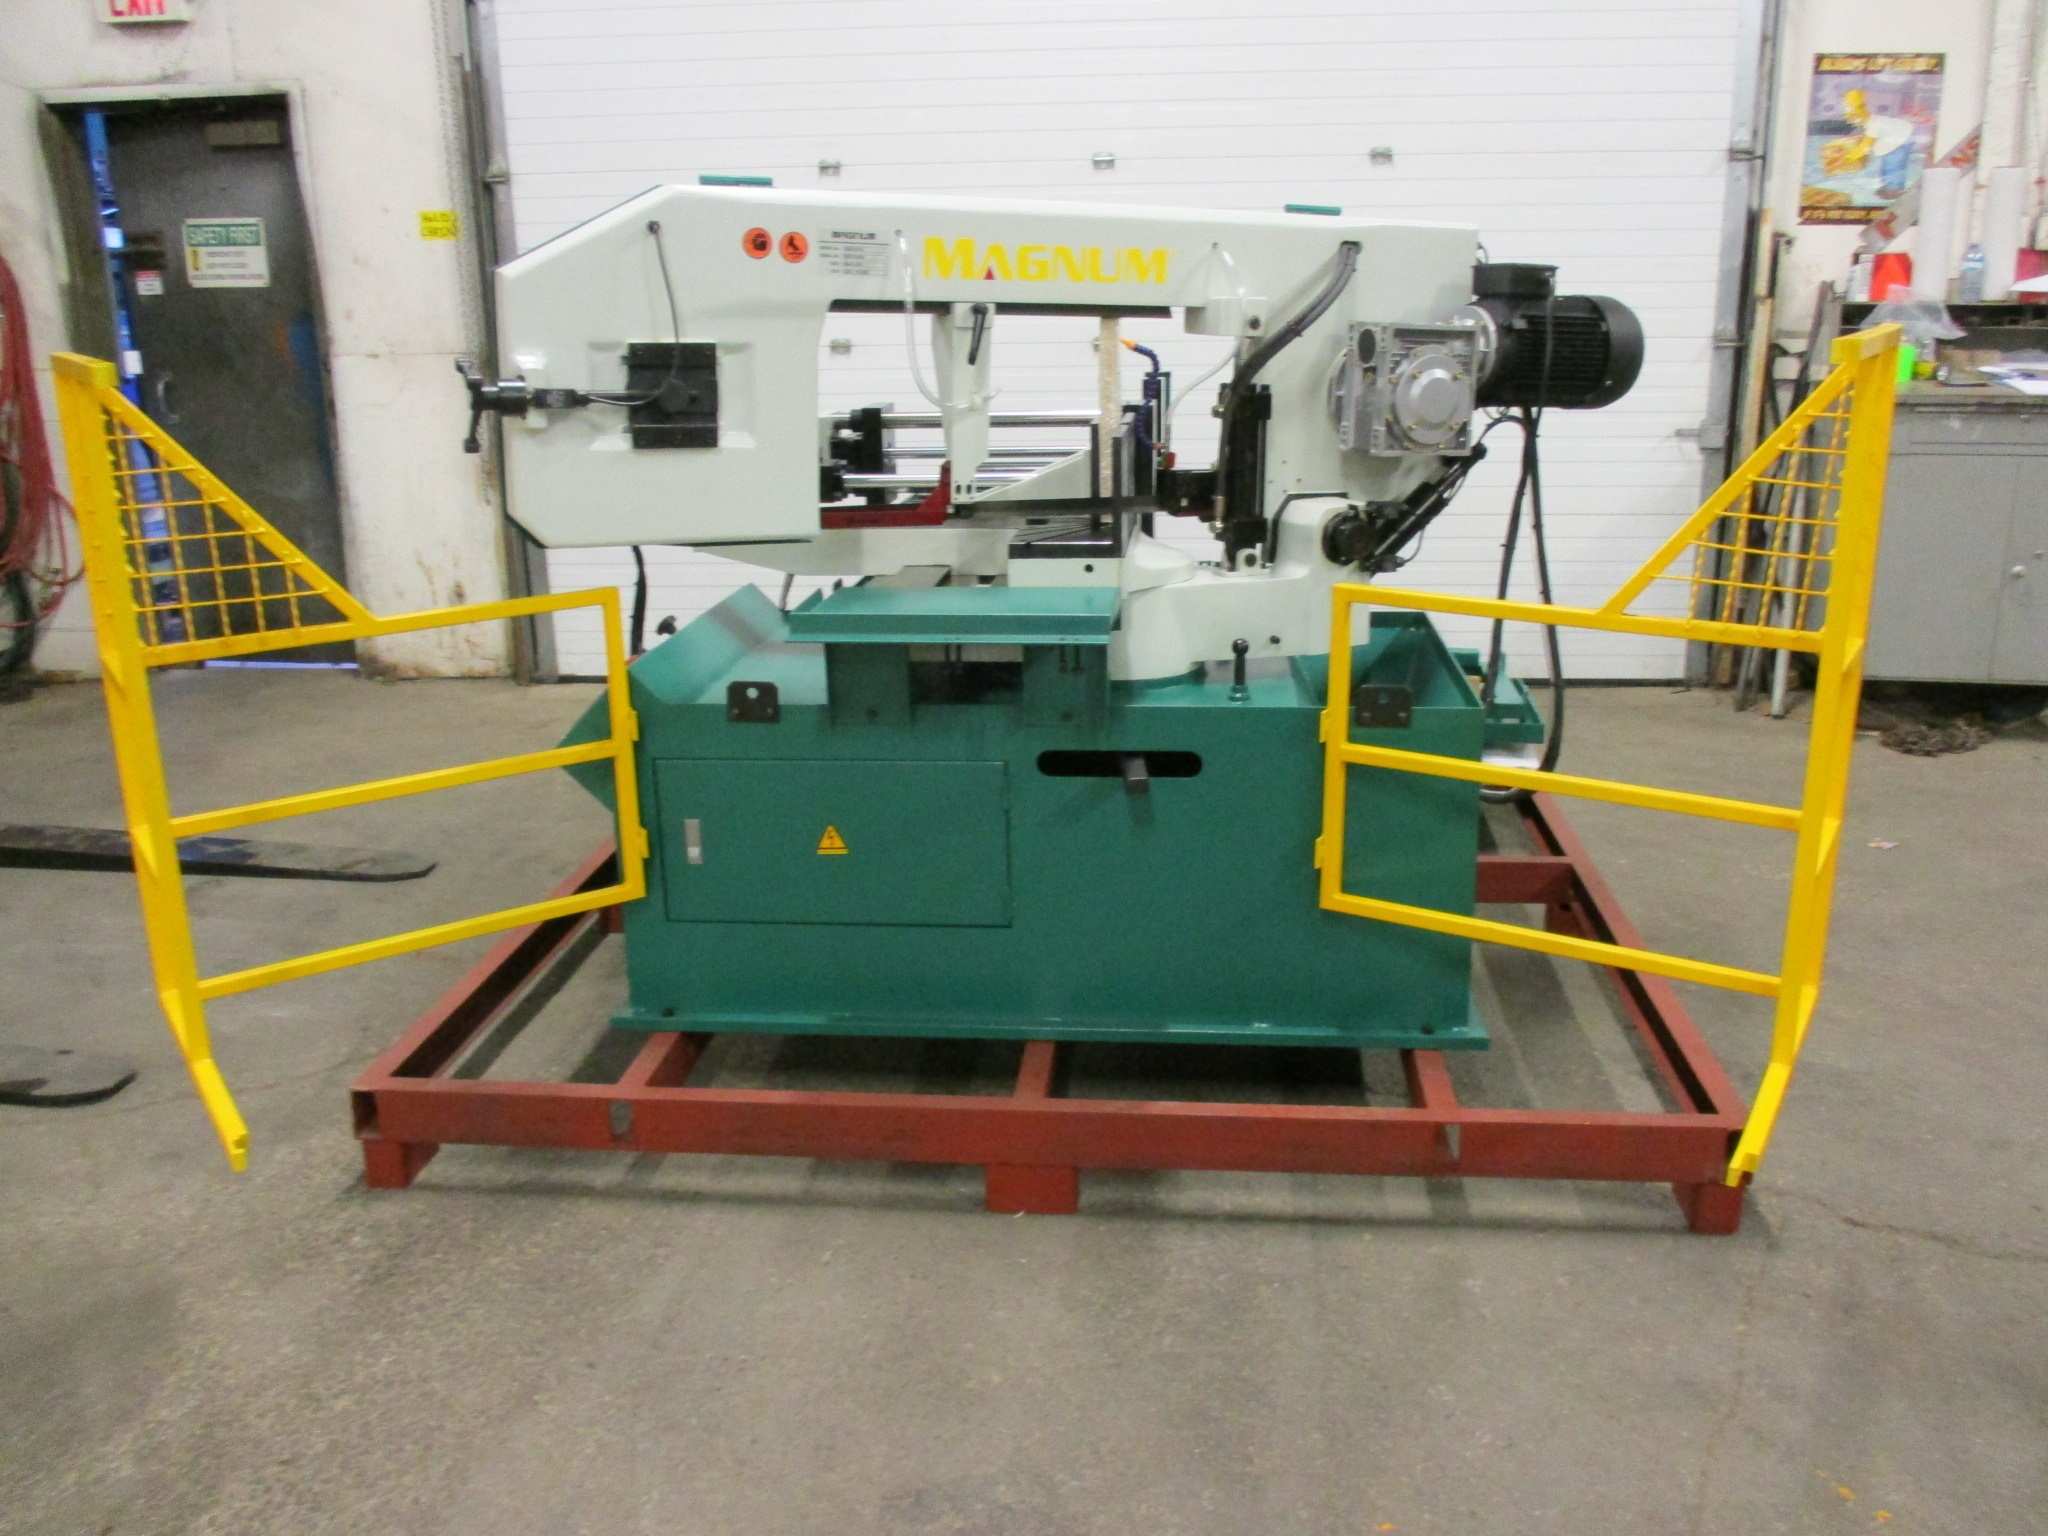 Magnum BSM-1813A Fully Automatic CNC Horizontal Band Saw - 18 X 13 inch CUTTING CAPACITY - CNC - Image 3 of 4